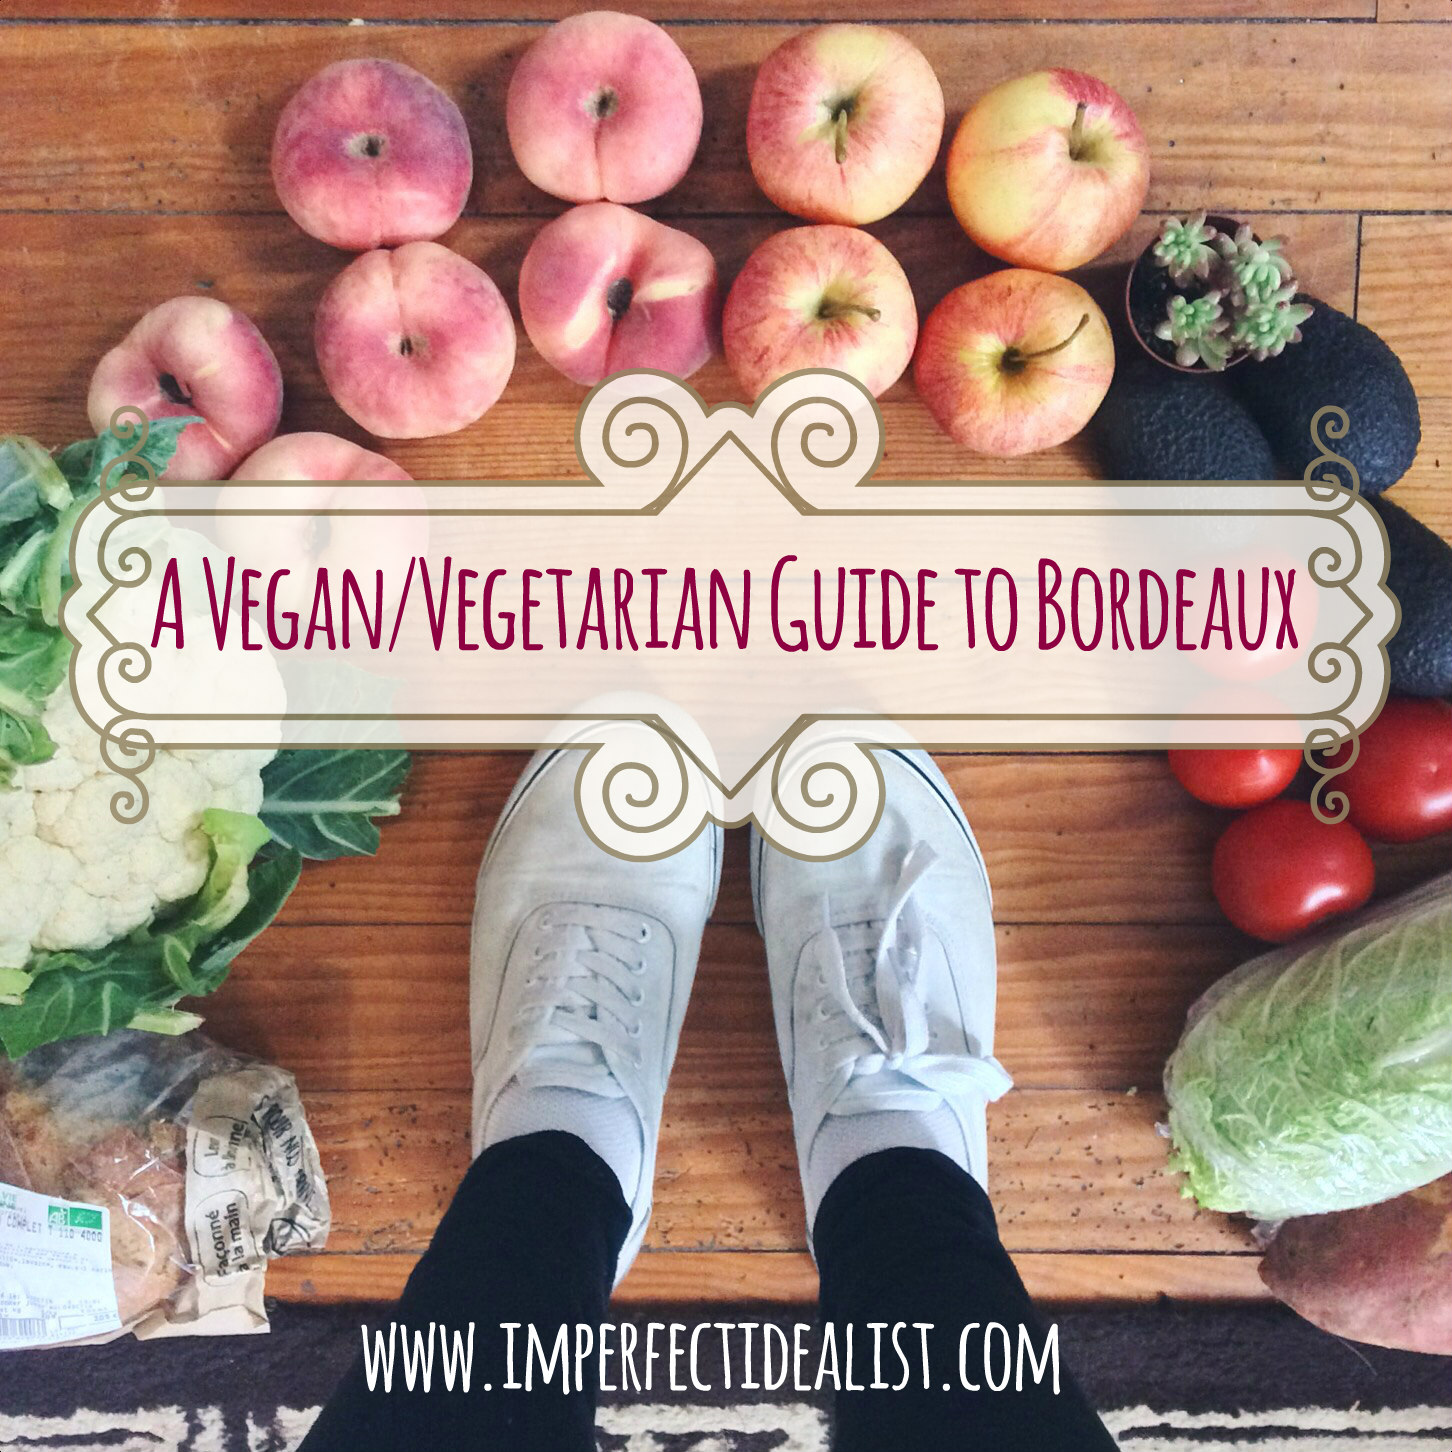 vegan vegetarian guide Bordeaux France